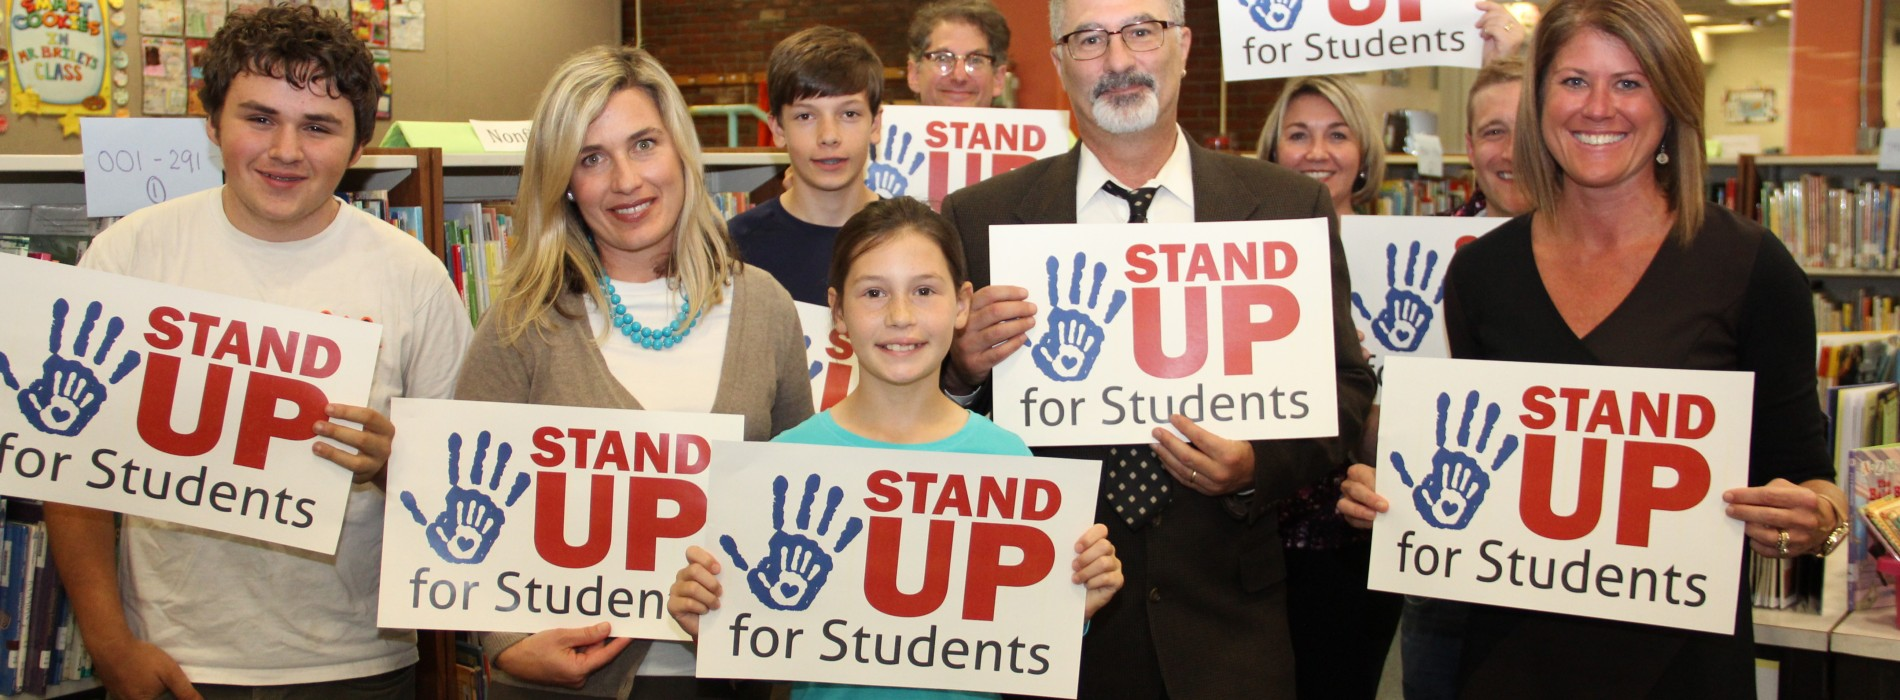 It's time to stand up against Gov. LePage's anti-education agenda